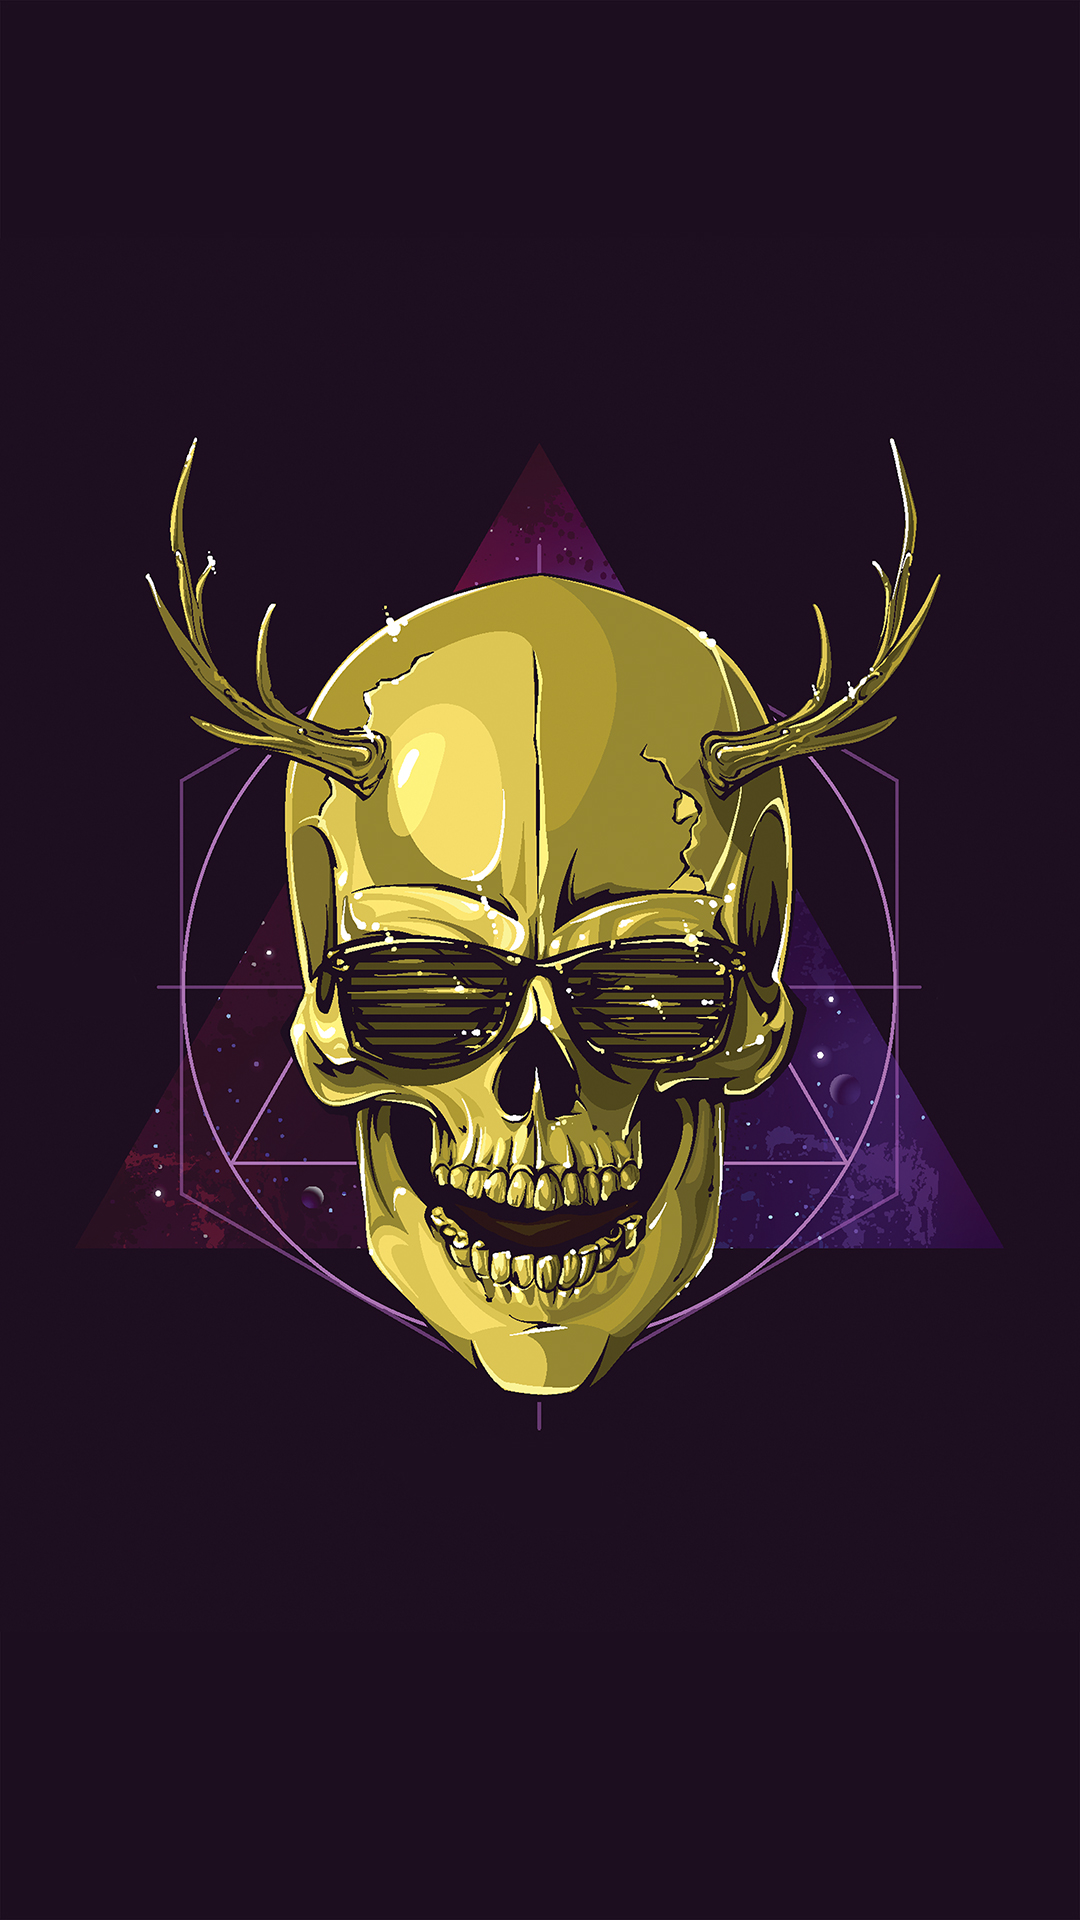 New Cute Wallpapers For Mobile Phones Free Hd Hipster Skull Phone Wallpaper 1985